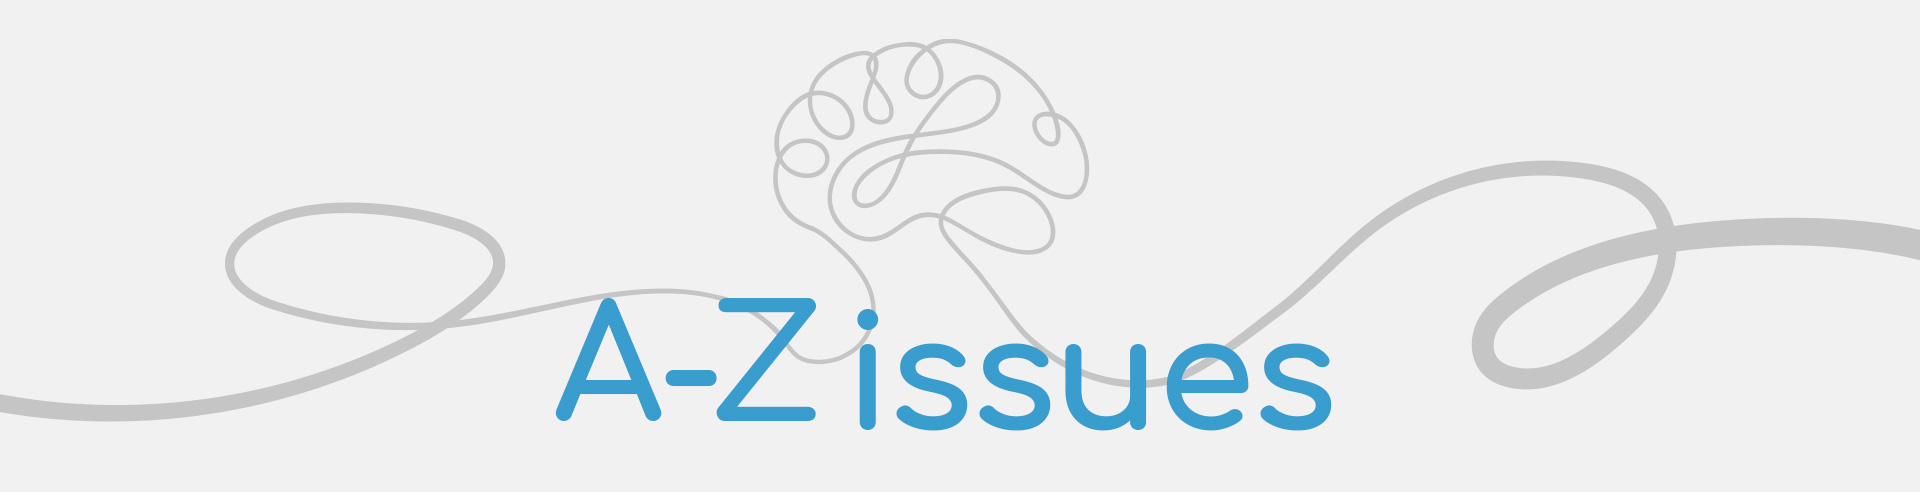 A-Z issues - section header